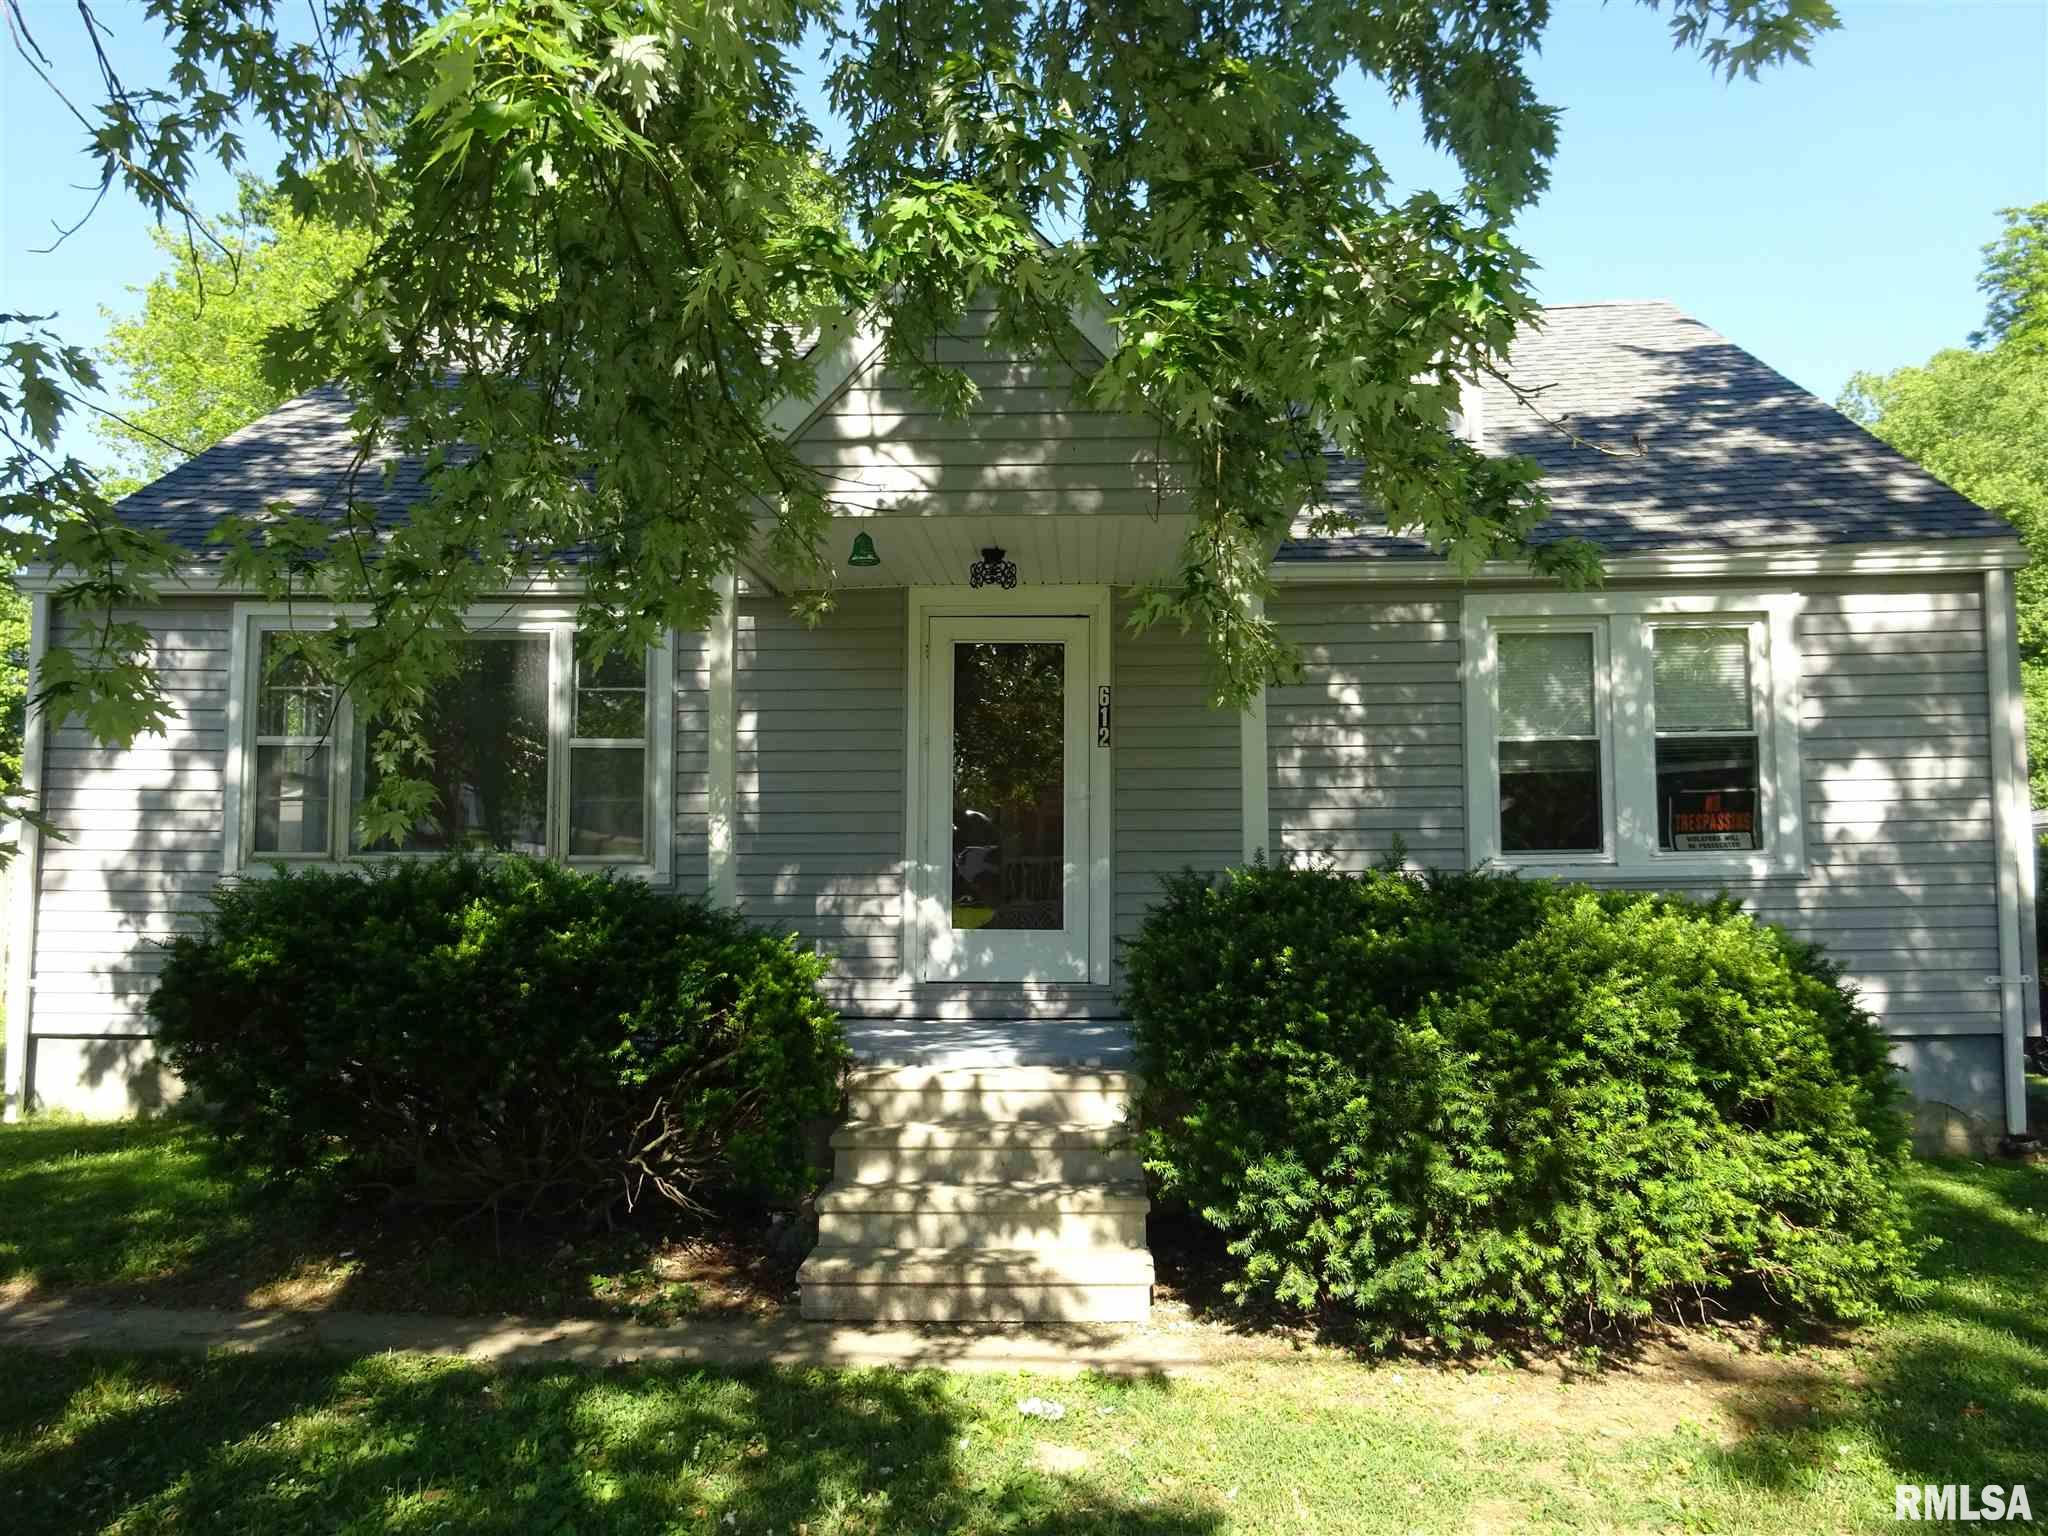 612 N Friend Property Photo - Carrier Mills, IL real estate listing